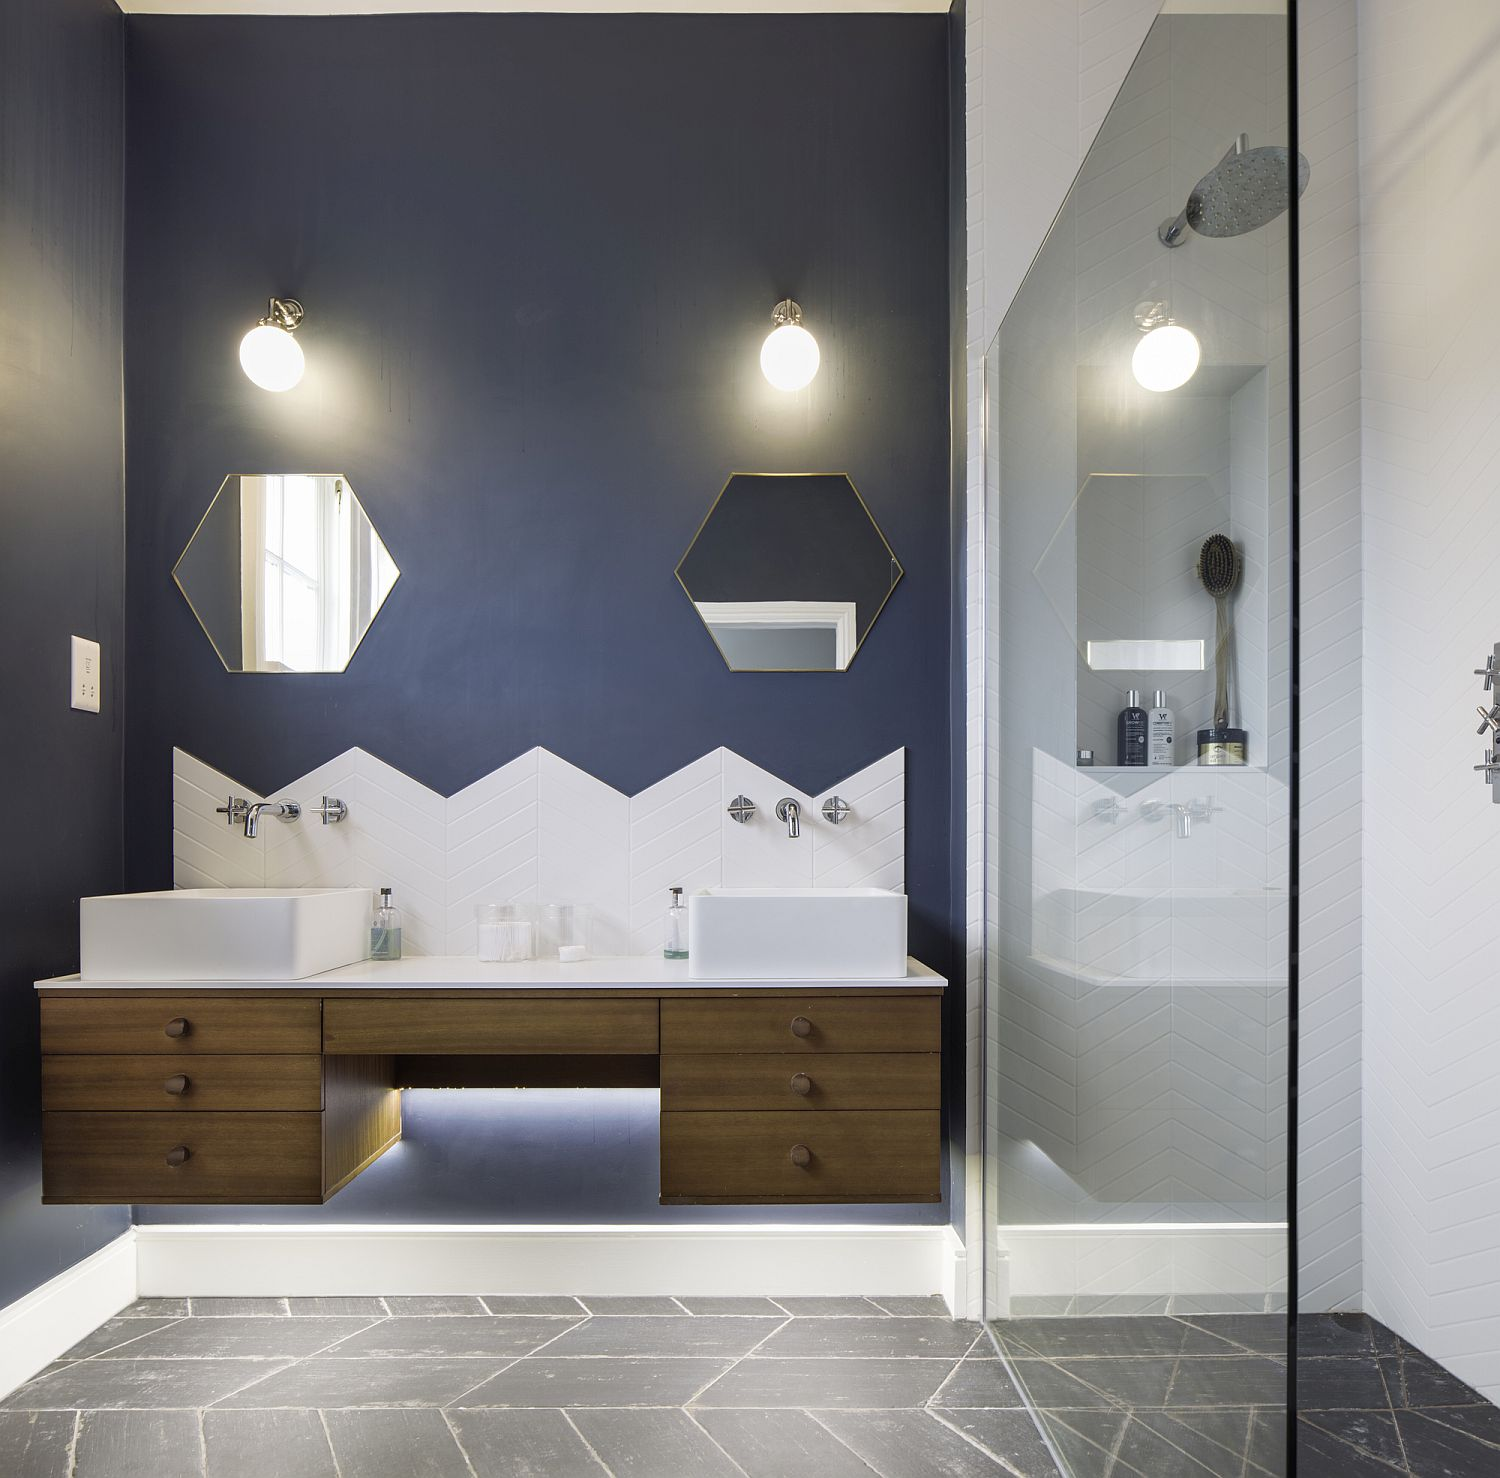 Contemporary bathroom in bluish-gray and white